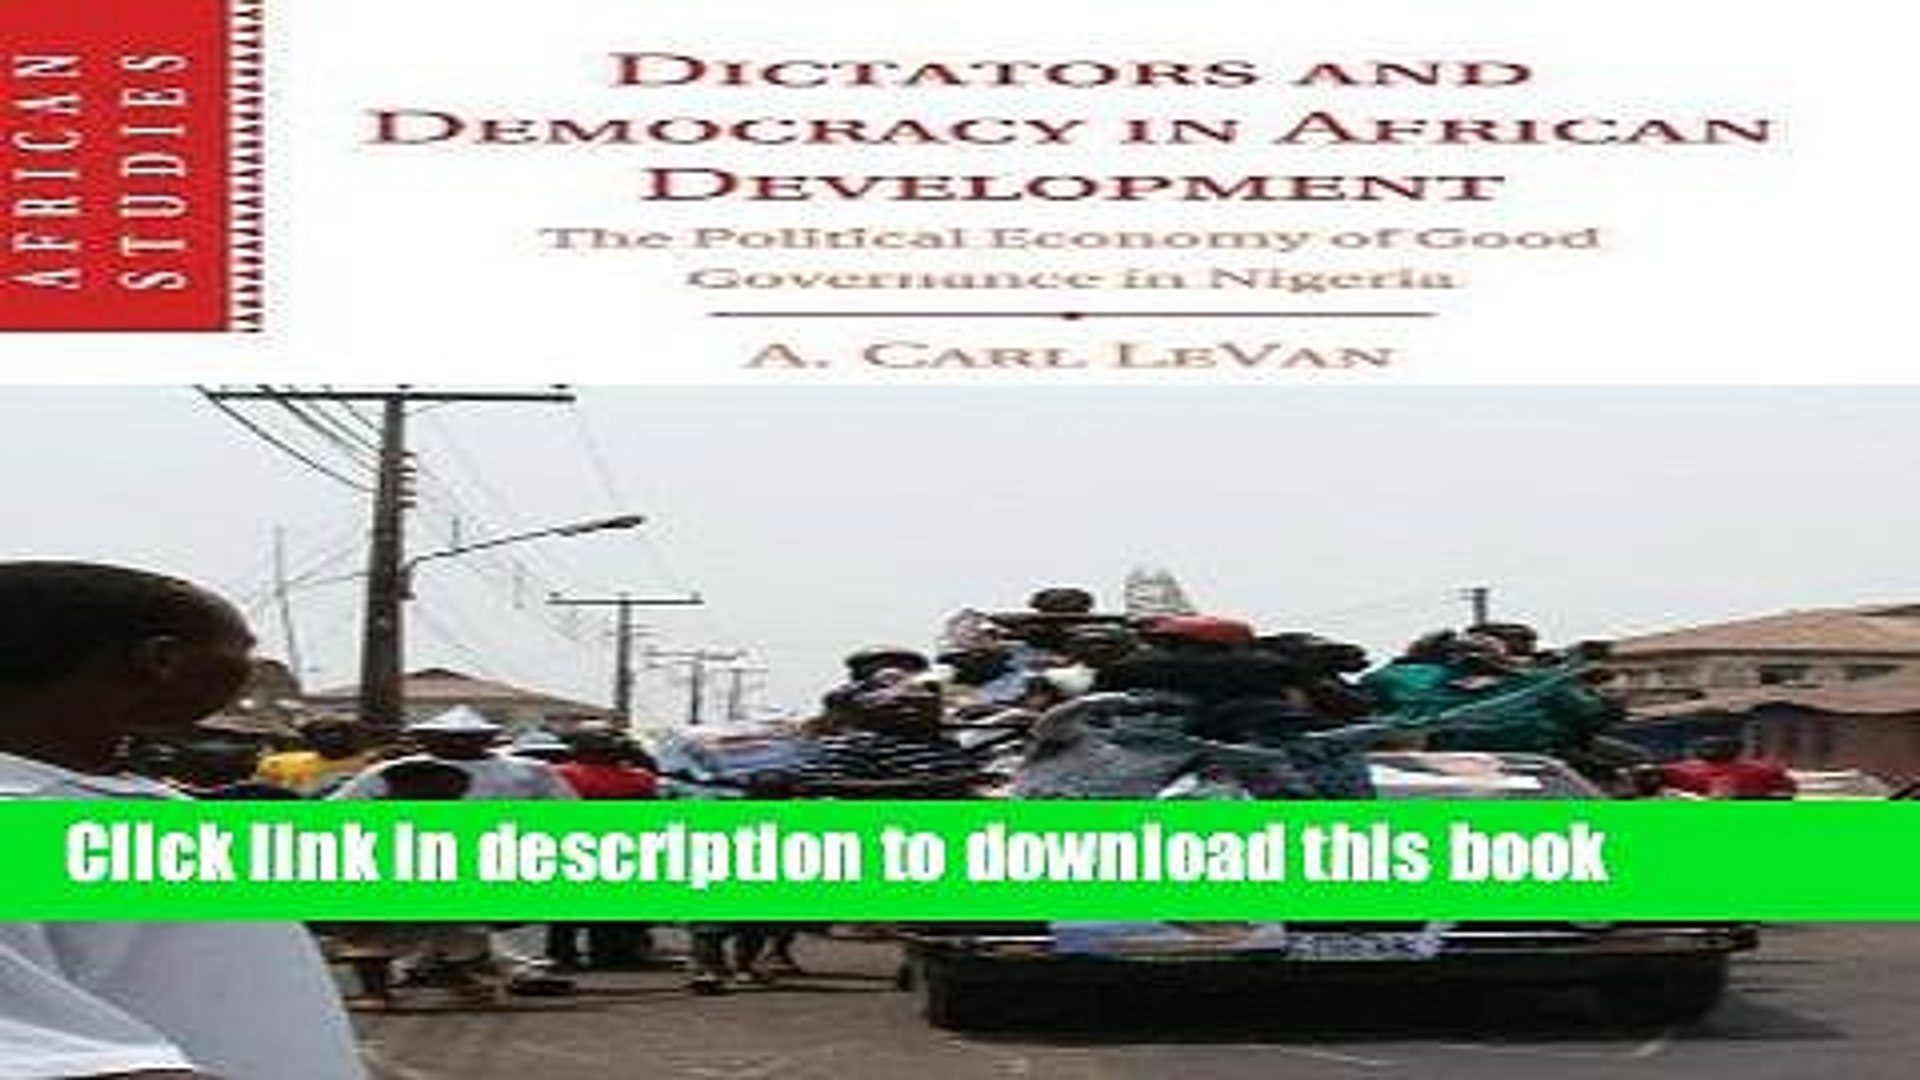 Read Dictators and Democracy in African Development: The Political Economy of Good Governance in